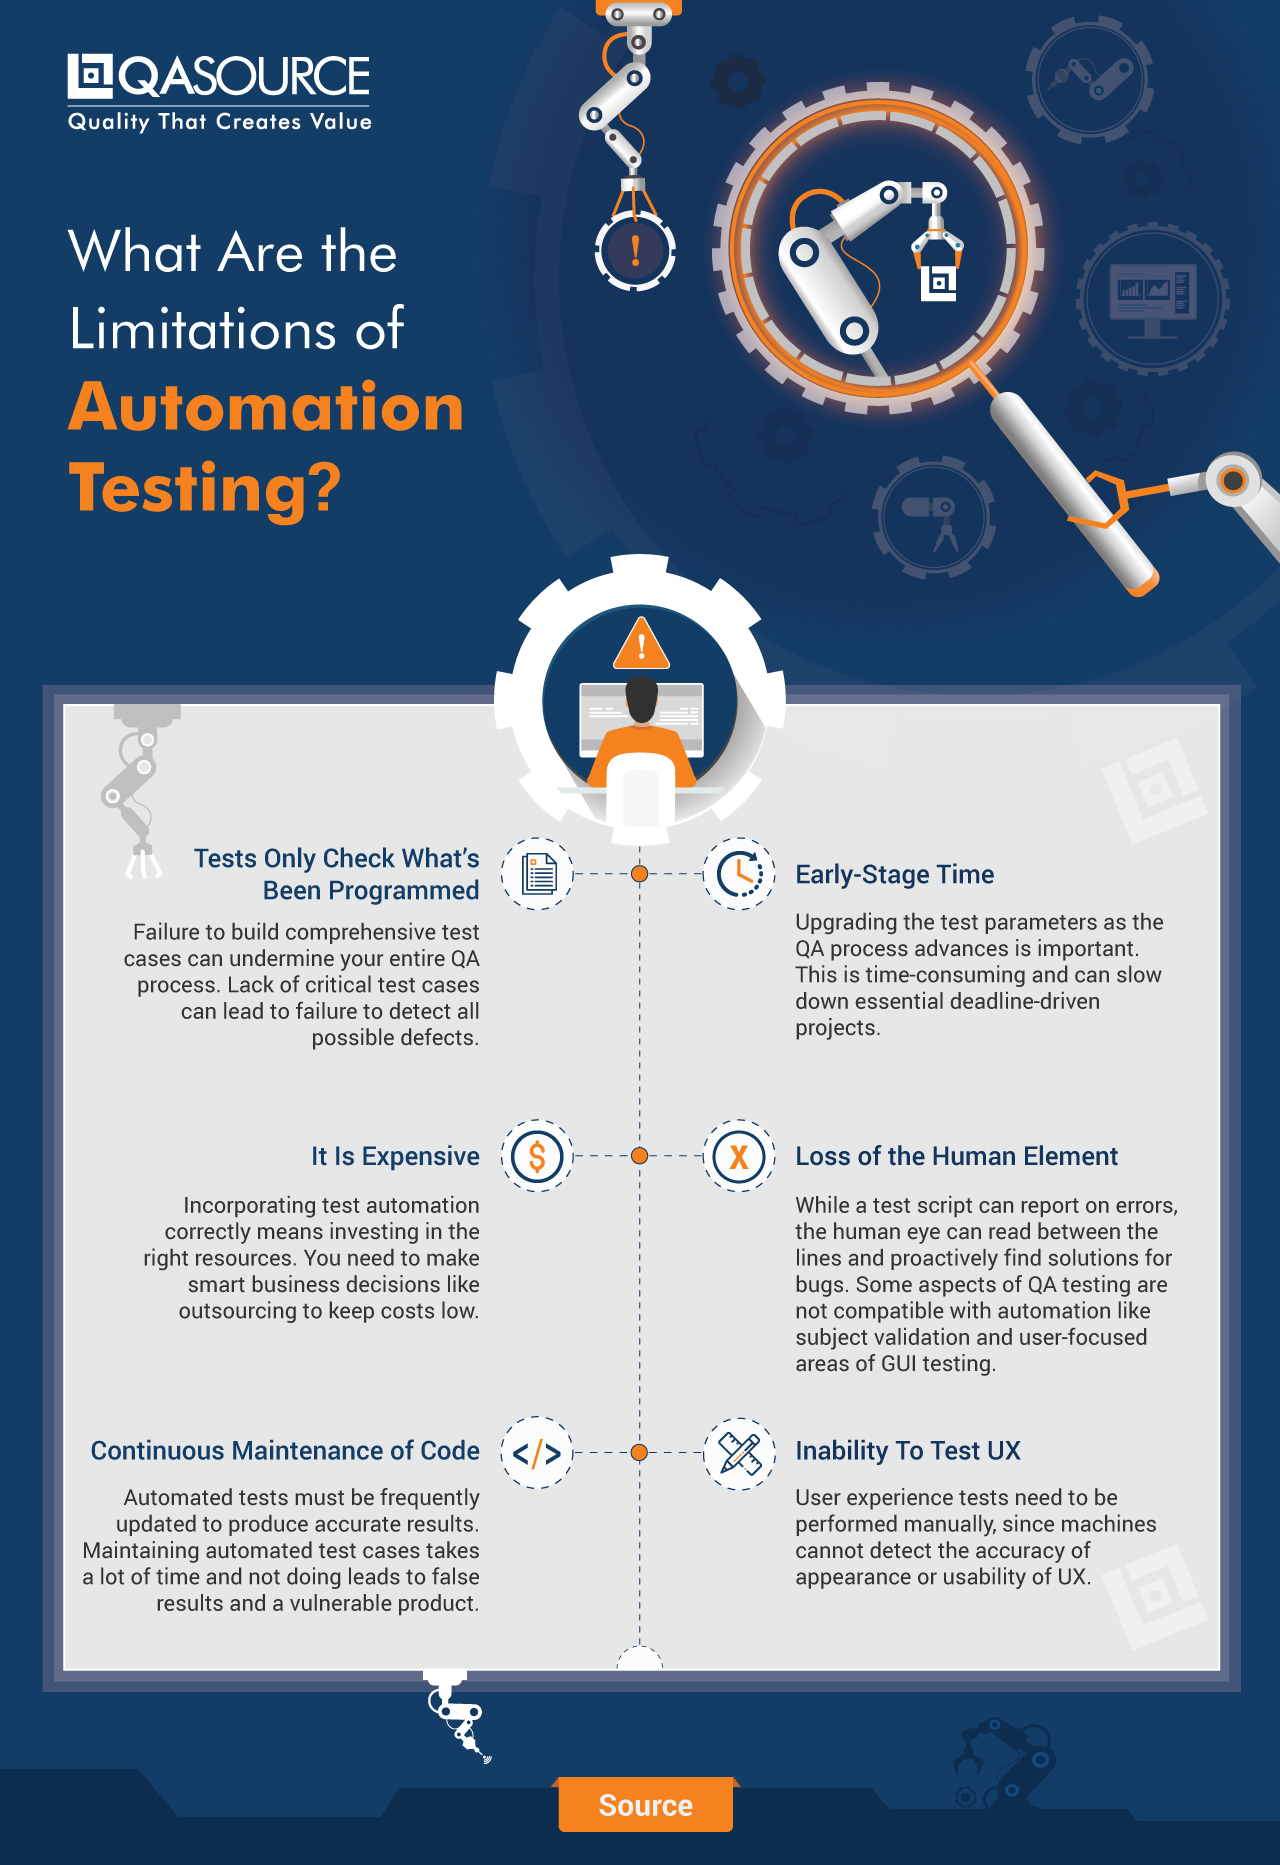 What Are the Limitations of Automation Testing?